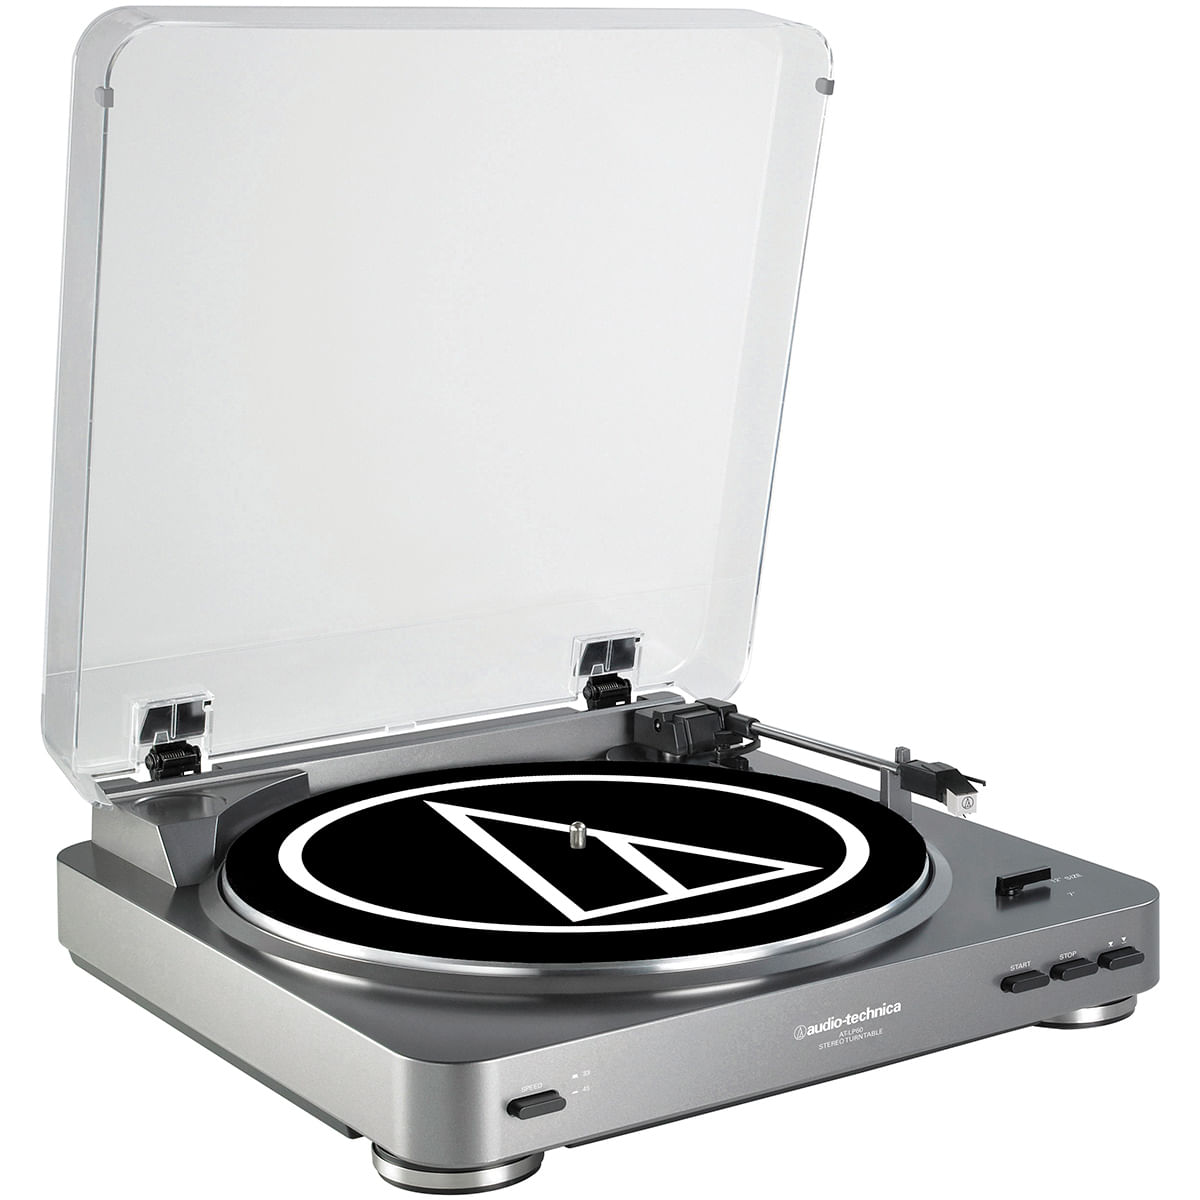 Audio-Technica-AT-LP60-USB-Principal